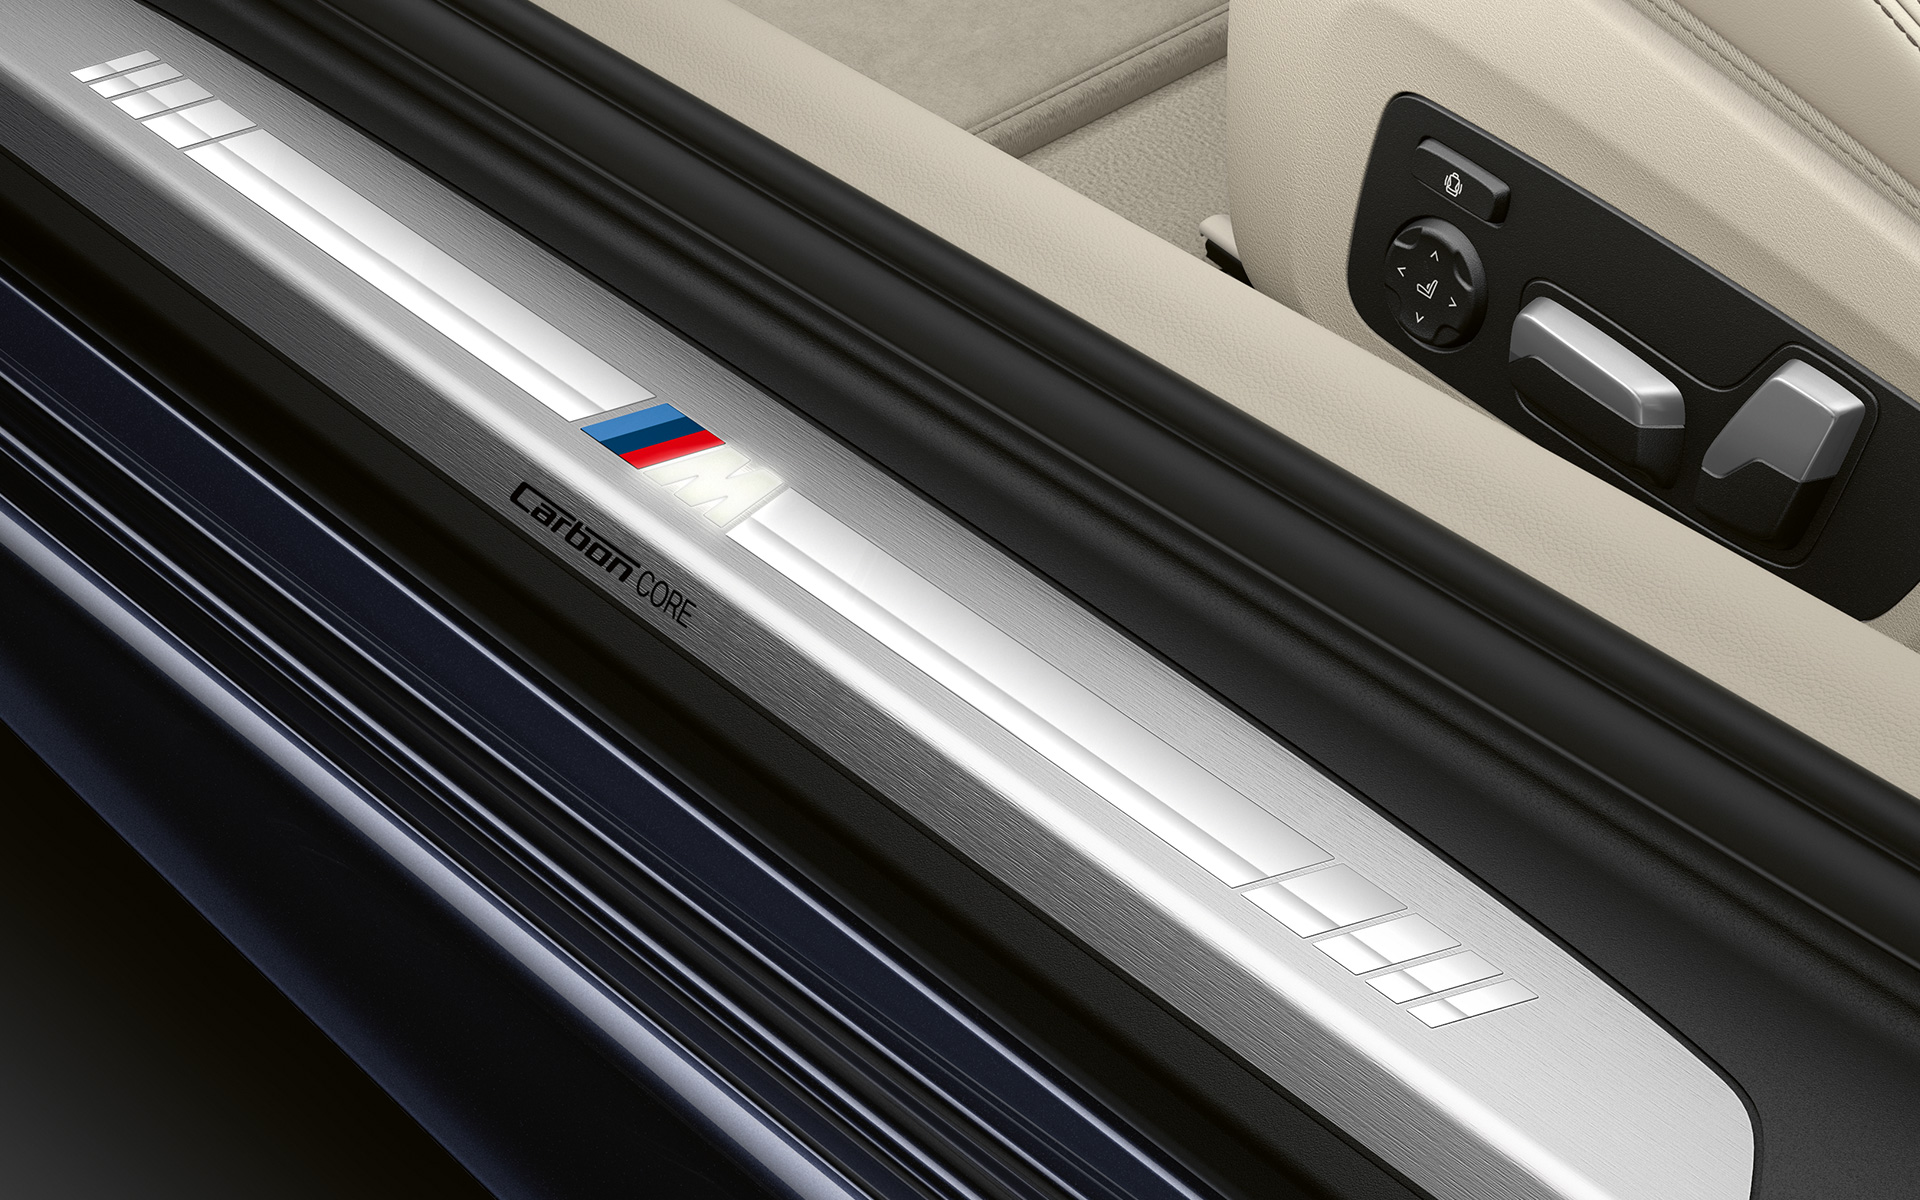 Close-up of the door sill of the BMW 8 Series Coupé with M logo.